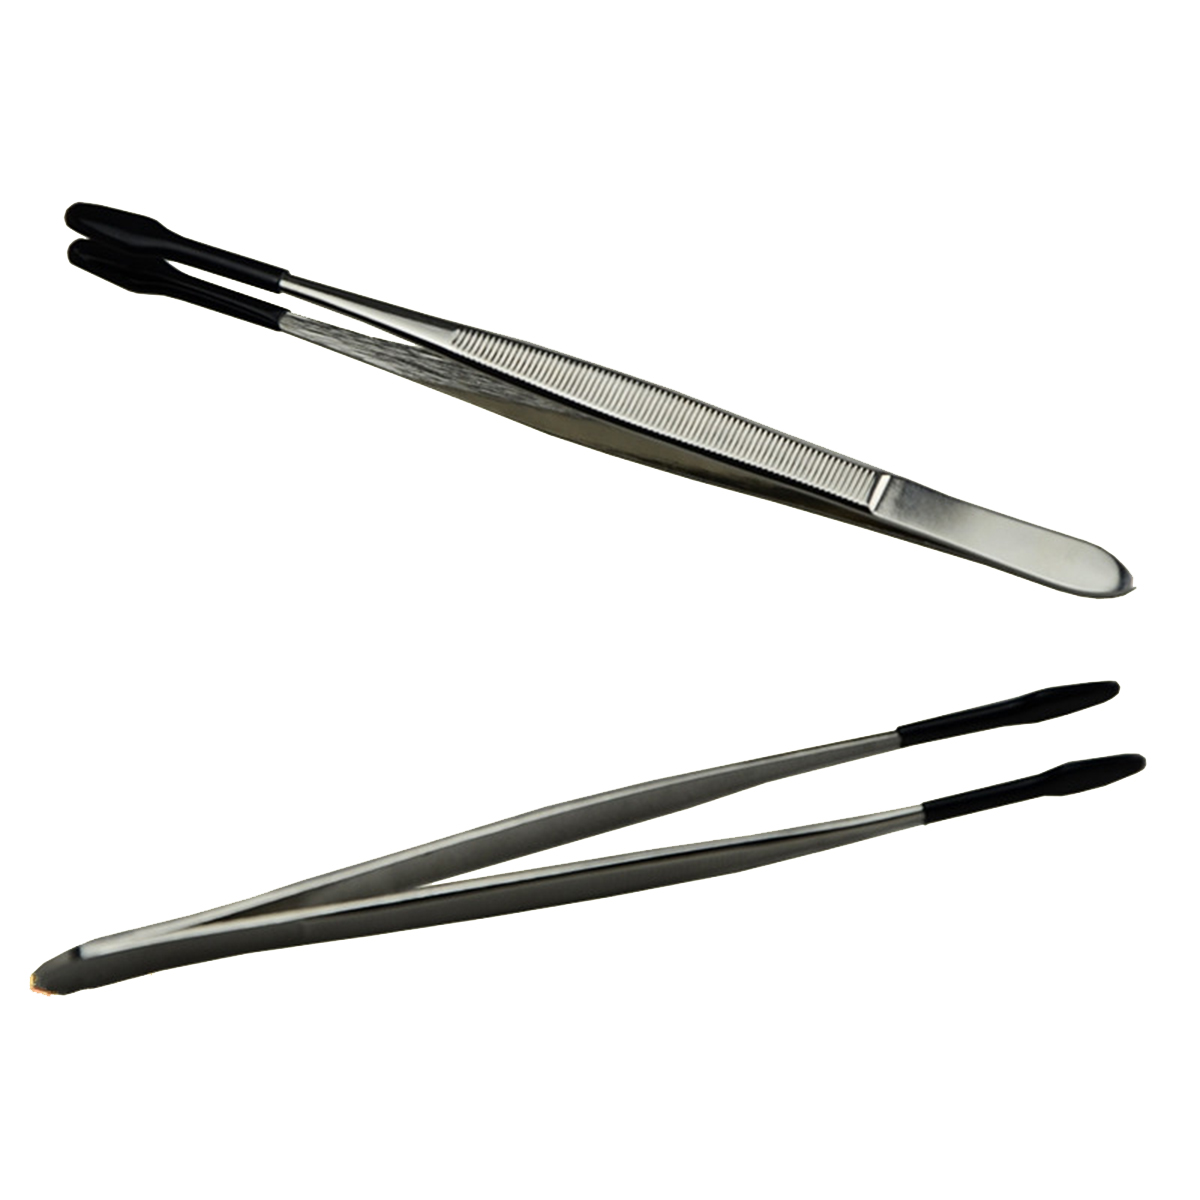 XNEMON Stainless Steel Tweezer For Jewelry/Coin Stamp Collection Handling Tools Collectibles Industrial Tweezers Hand Tools 15cm